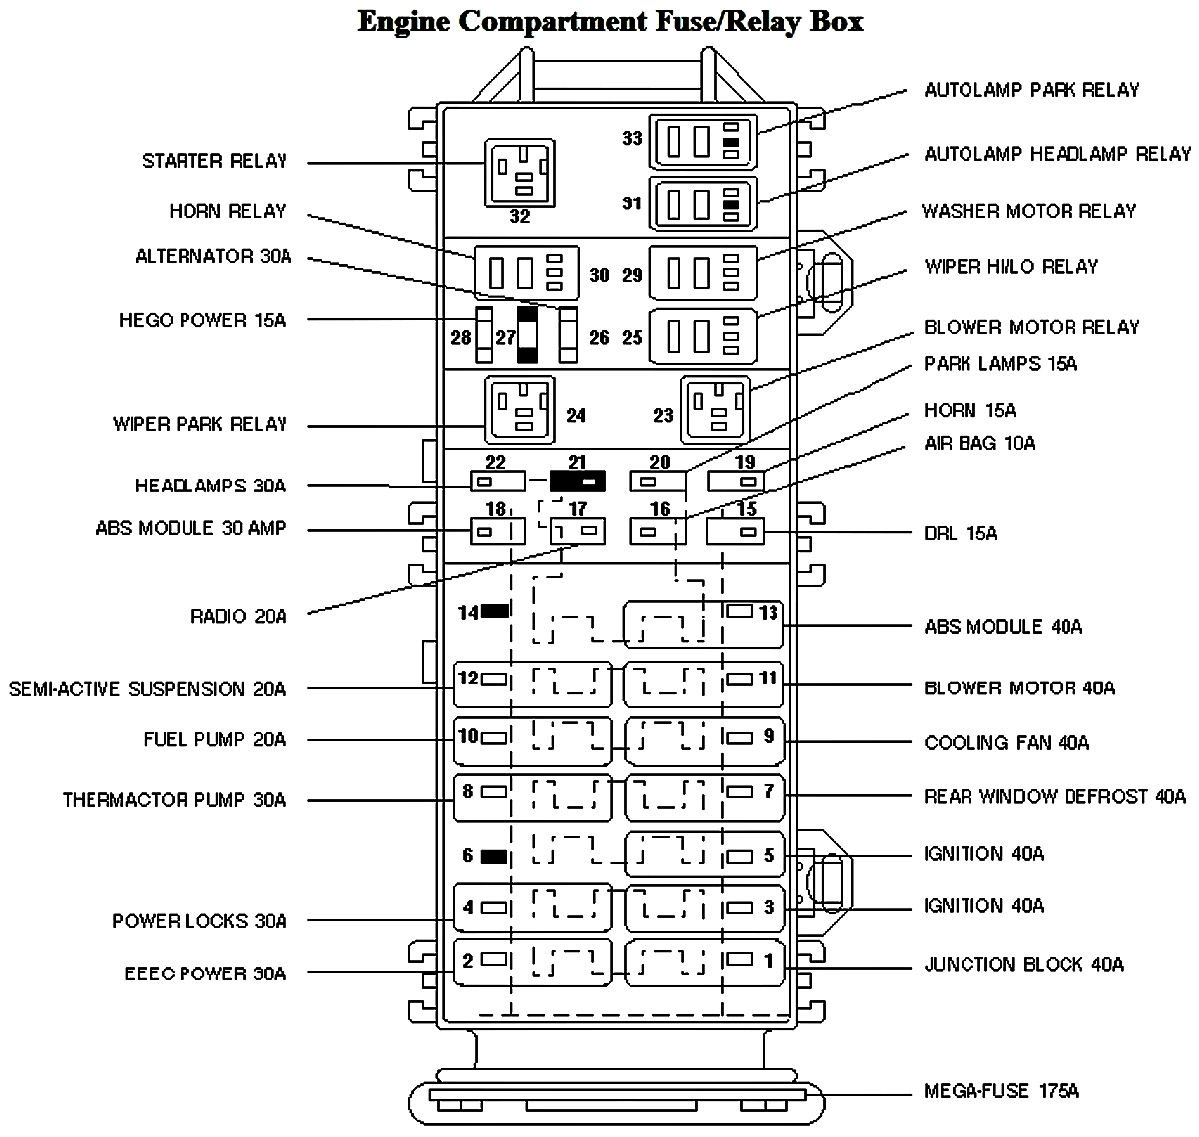 1TN_515] 2000 Mercury Mountaineer Fuse Box Diagram | subject-return wiring  diagram value | subject-return.iluoghicomunisullacultura.it | 1998 Mercury Mountaineer Fuse Diagram |  | subject-return.iluoghicomunisullacultura.it